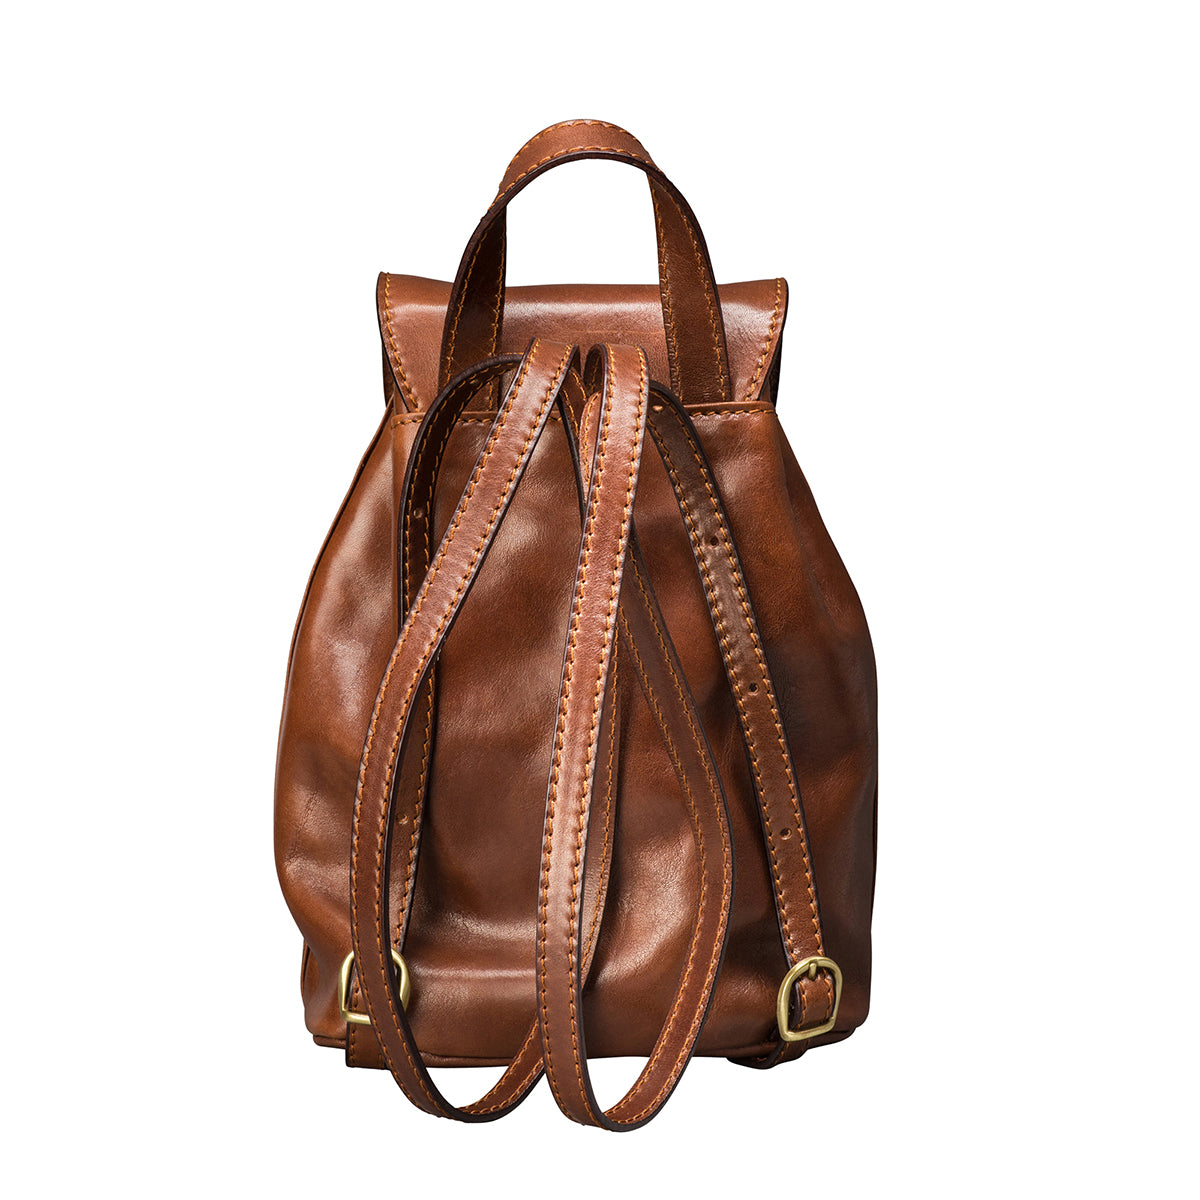 Image 4 of the 'Popolo' Compact Chestnut Veg-Tanned Leather Shoulder Bag